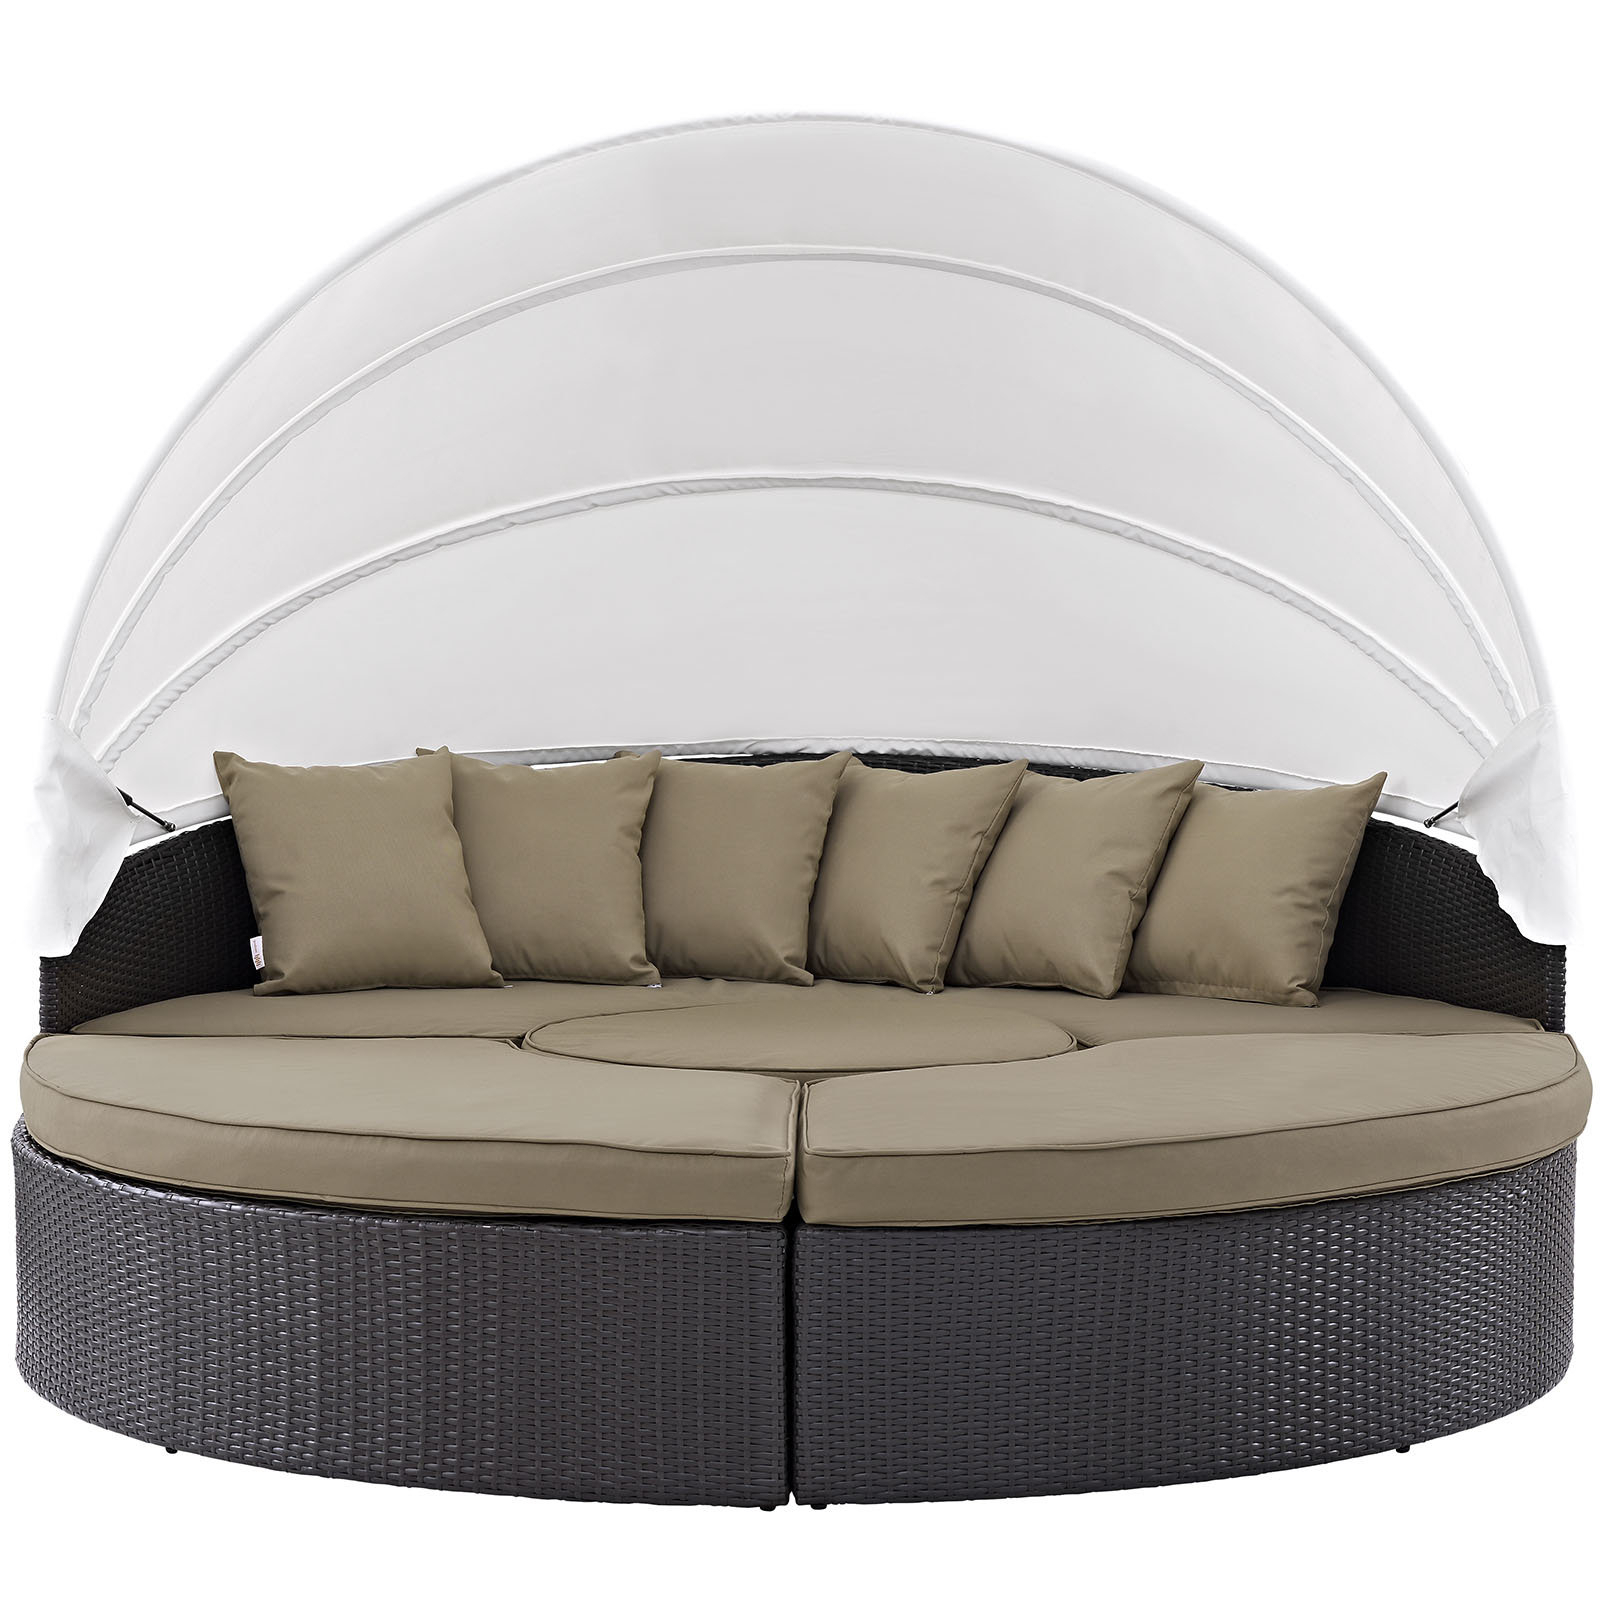 Keiran Daybeds With Cushions For Trendy Brentwood Patio Daybed With Cushions (View 8 of 20)